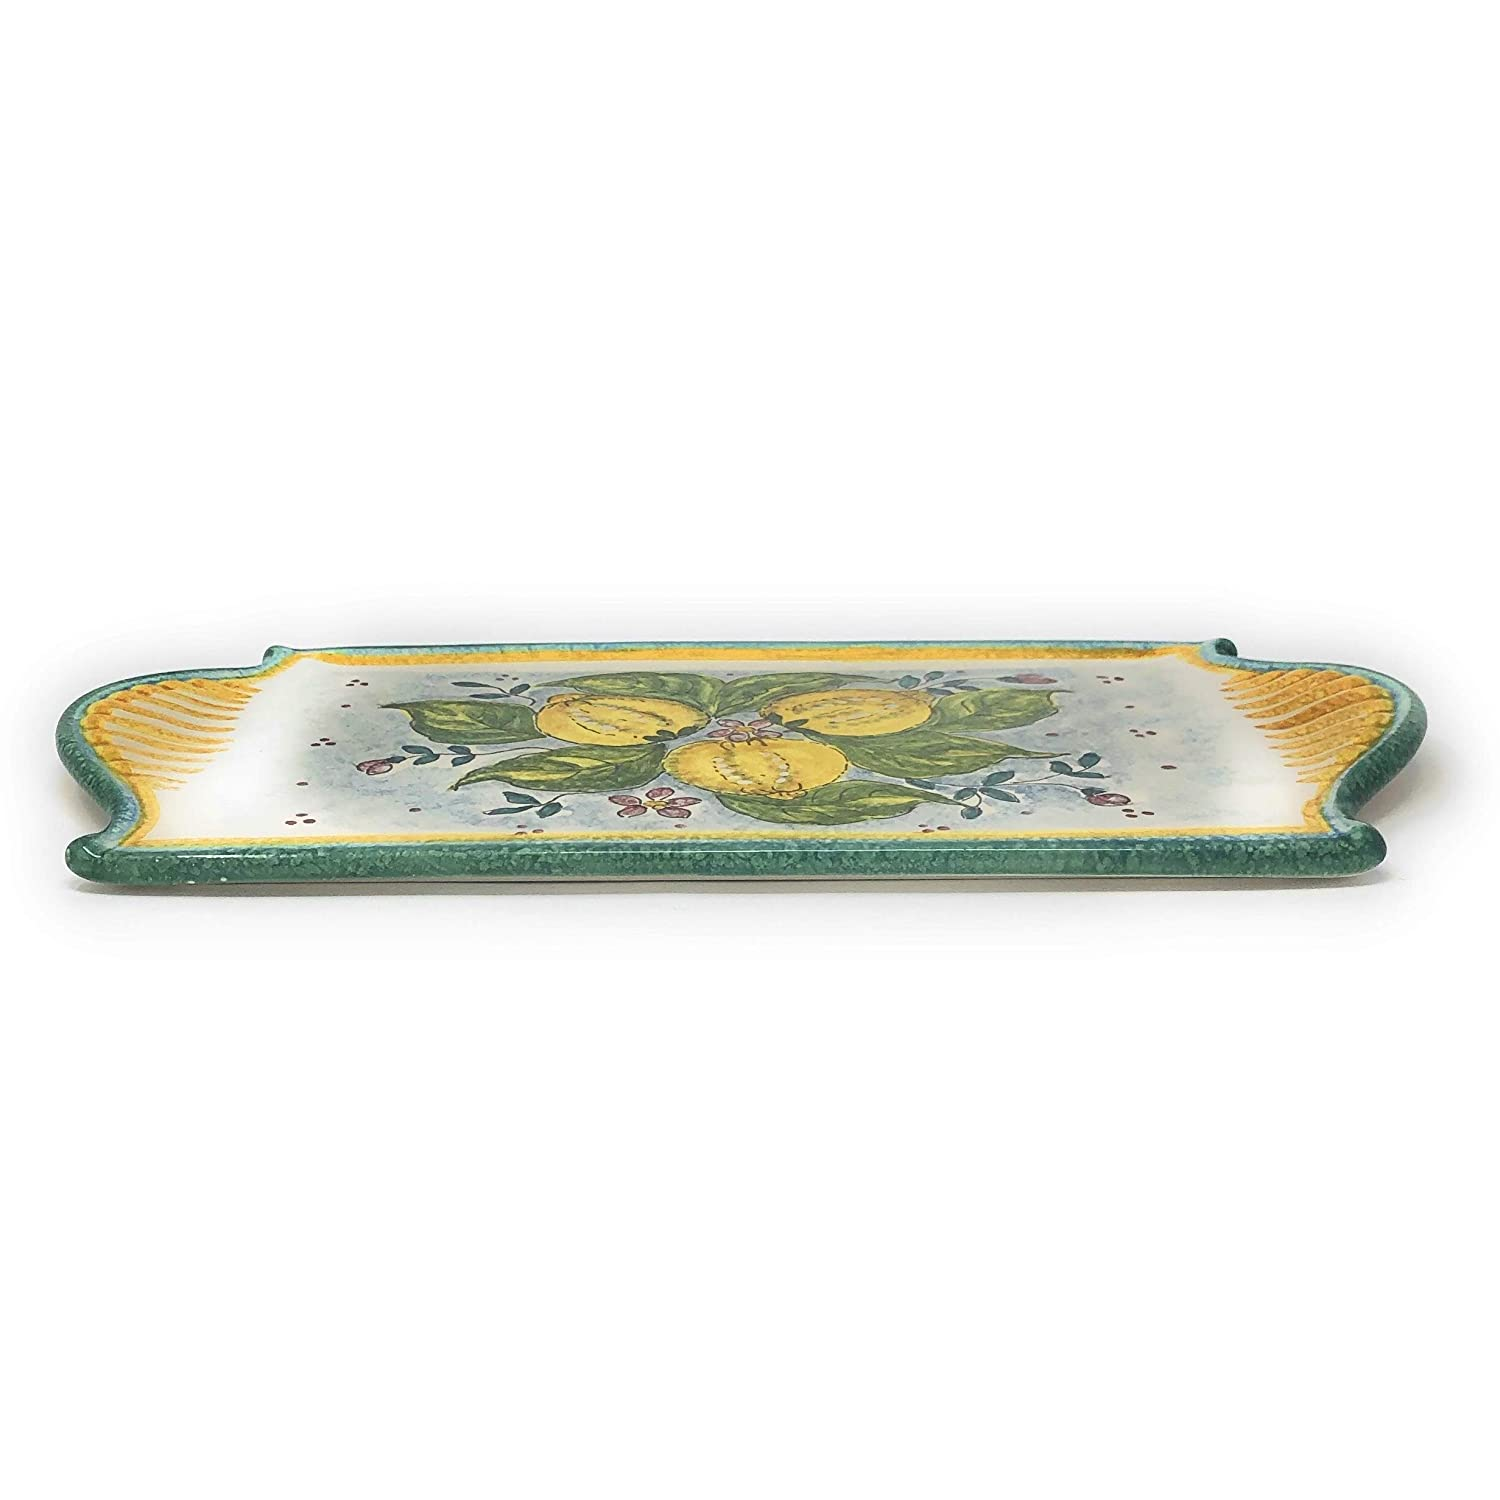 Italian Ceramic Art Cheese Tray Plate Appetizer Centerpieces Decorated Three Lemons Pottery Hand Painted Made in ITALY Tuscan Florence CERAMICHE DARTE PARRINI